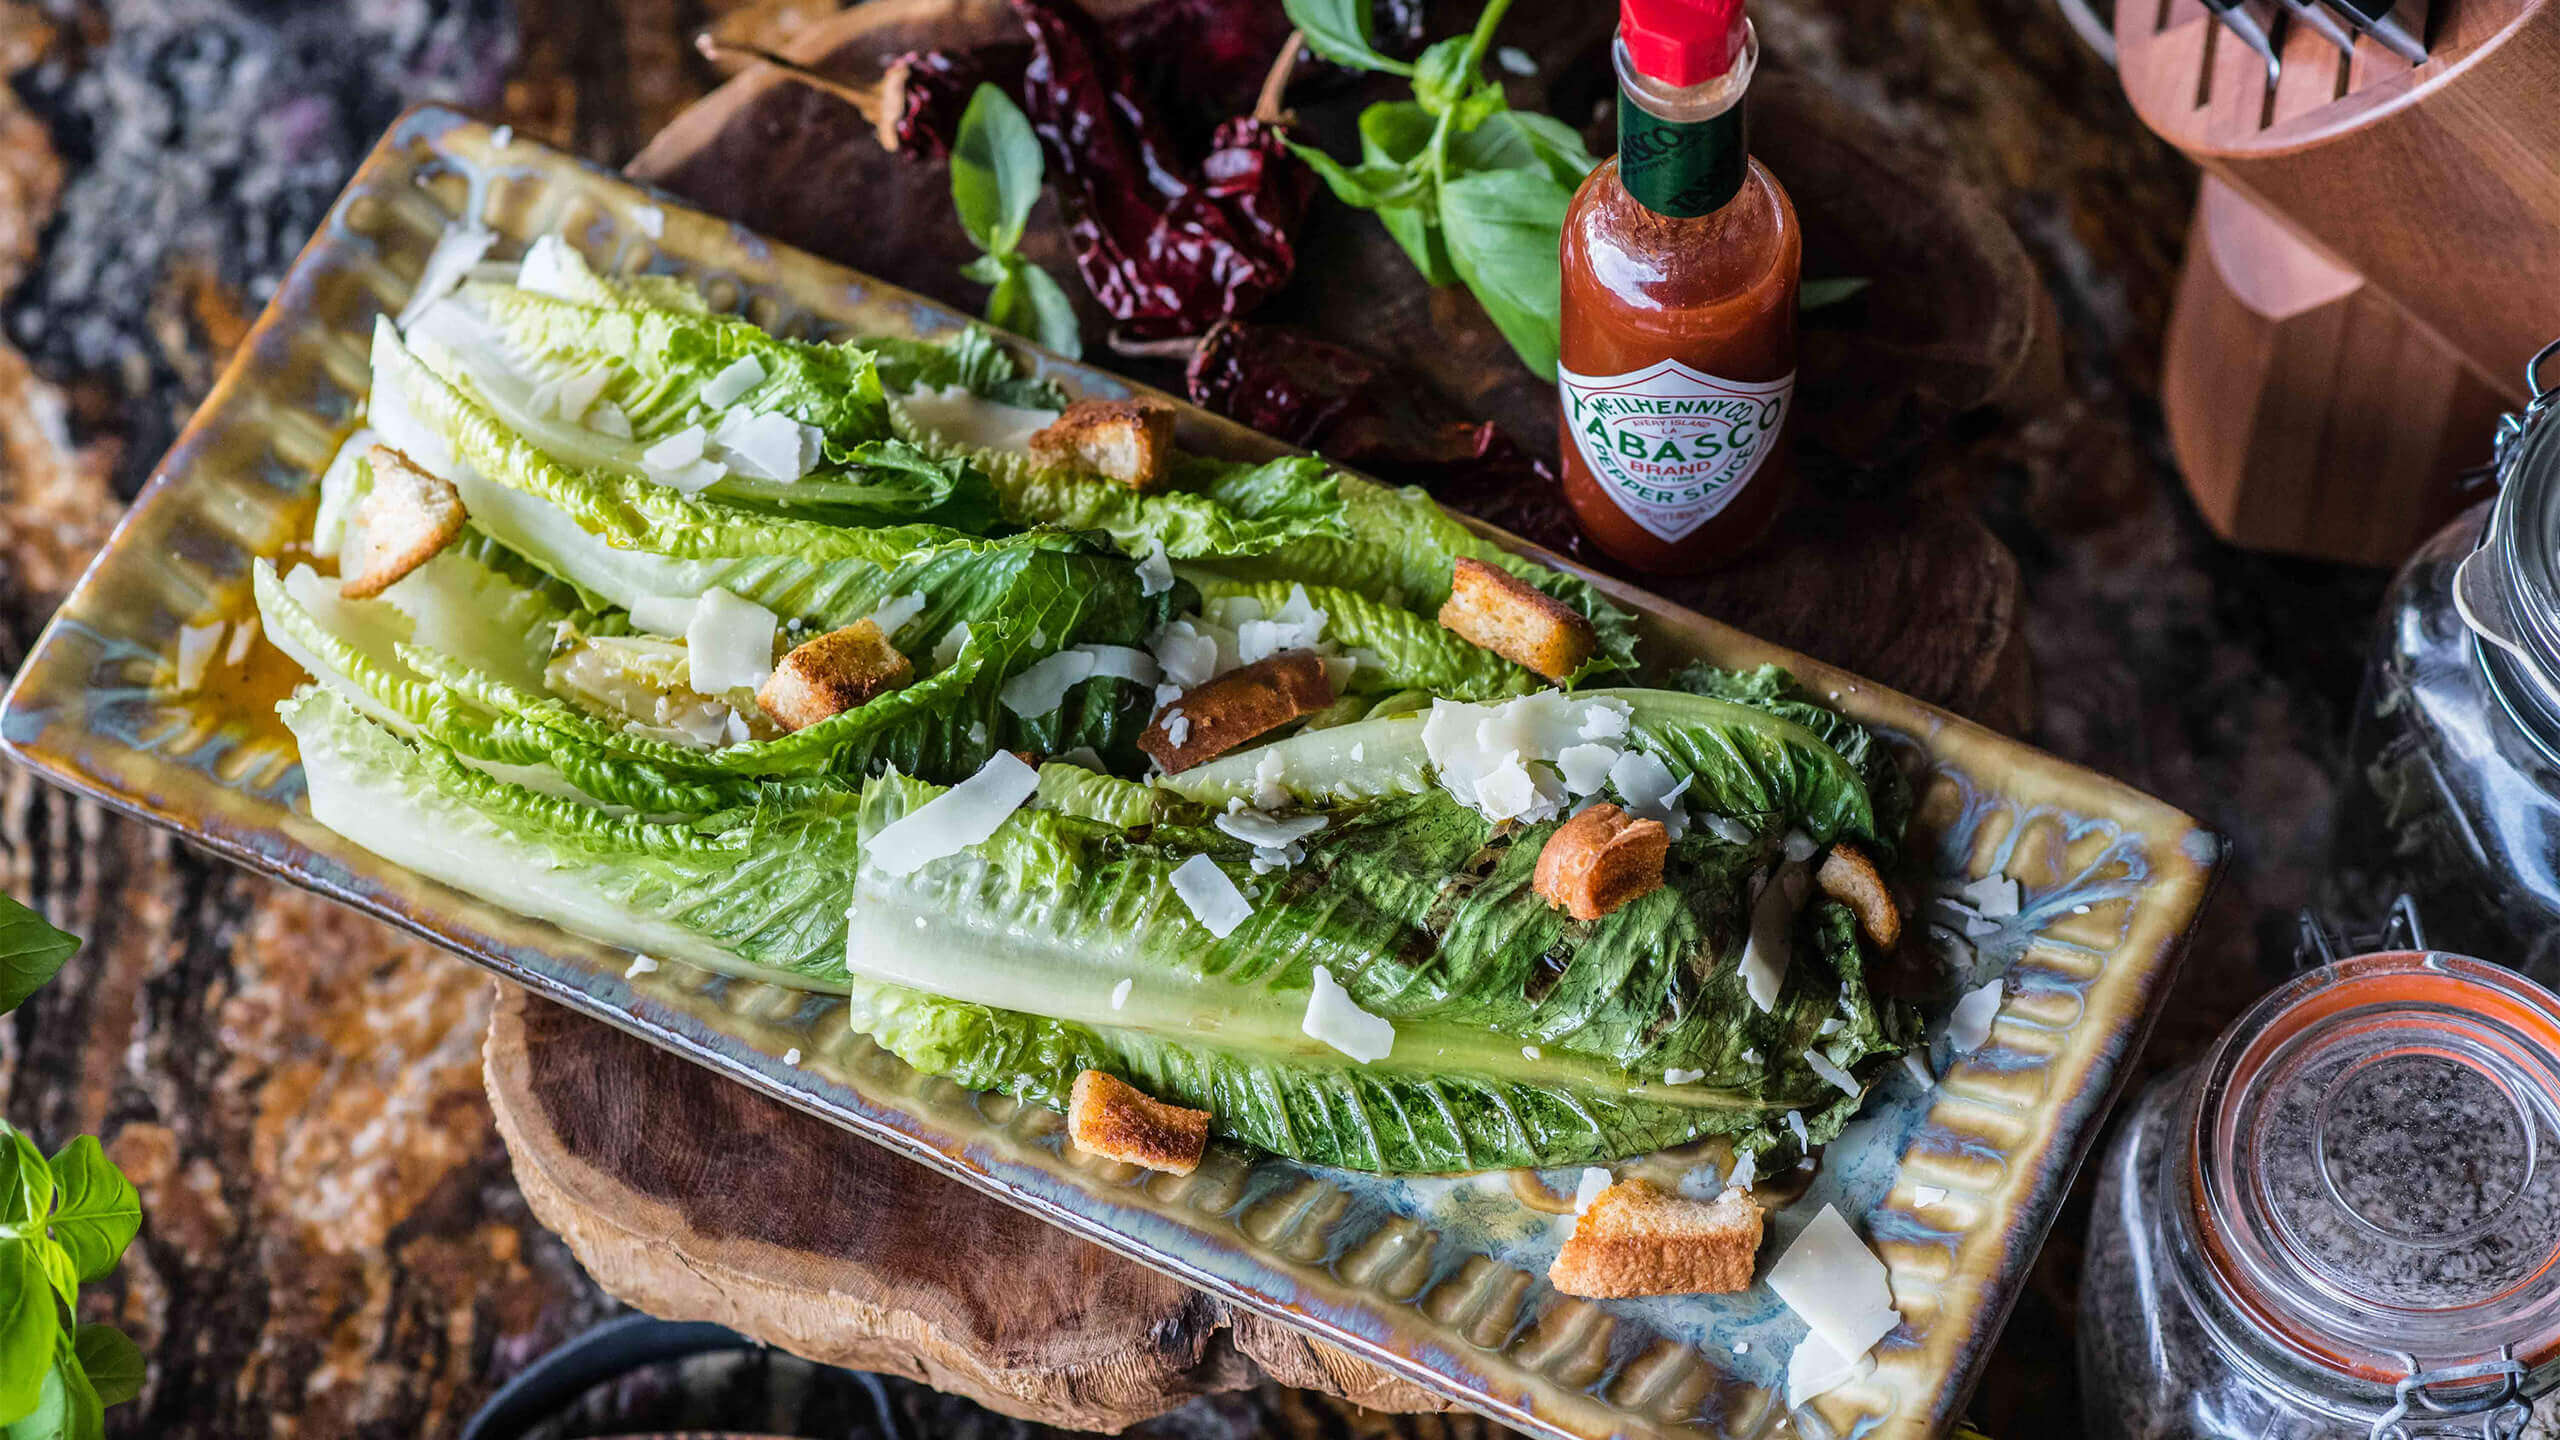 Grilled Romaine Salad with Spicy Vinaigrette